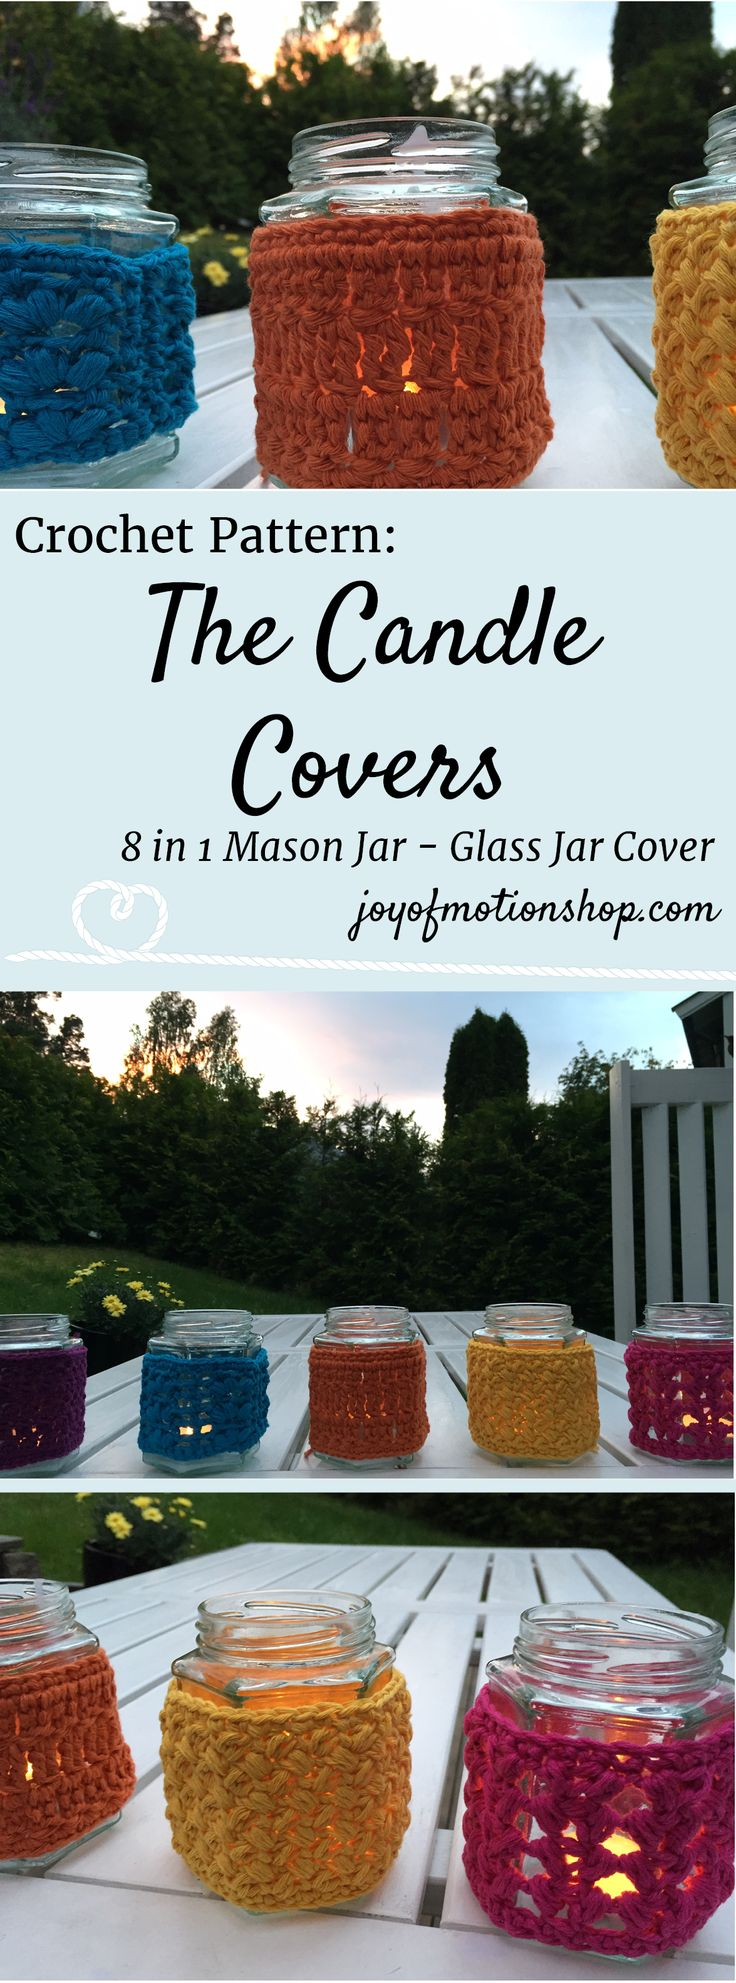 The Candle Covers - 8 in 1 crochet pattern. Crochet pattern for candle covers. Easy & quick. Perfect one day DIY project. You will need a Mason Jar or a glass jar & some scrap yarn. Gift idea for her. | crochet candle covers | mason jar cover crochet | glass jar candle cover | crocheted glass jar cover | diy glass jar cover | scrap yarn project. Click to purchase or repin to save it forever.